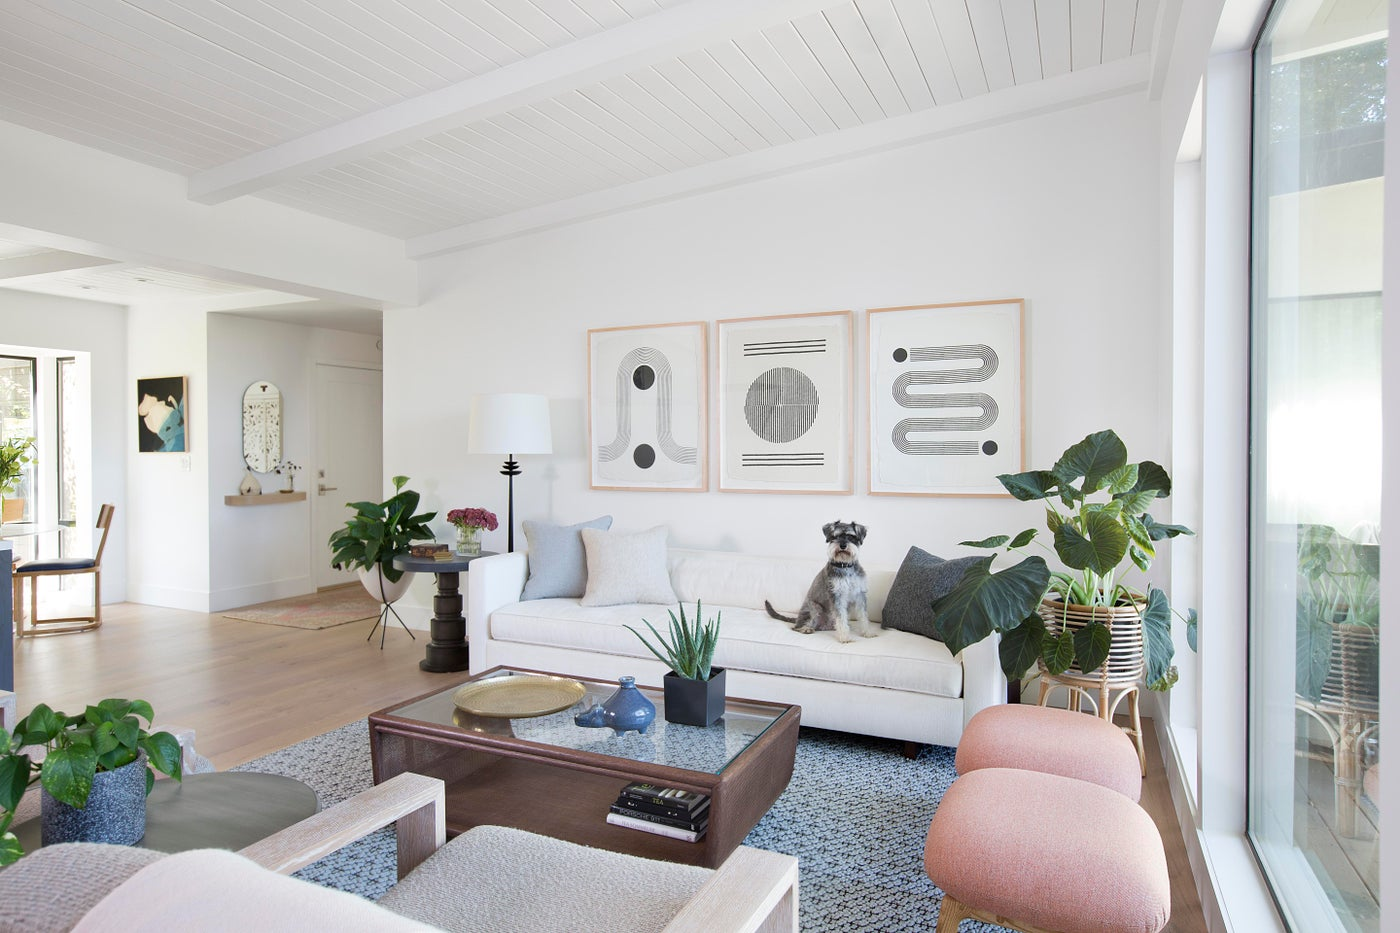 Modern Portola Valley Home, Living Room with White Sofa and Blush Ottomans